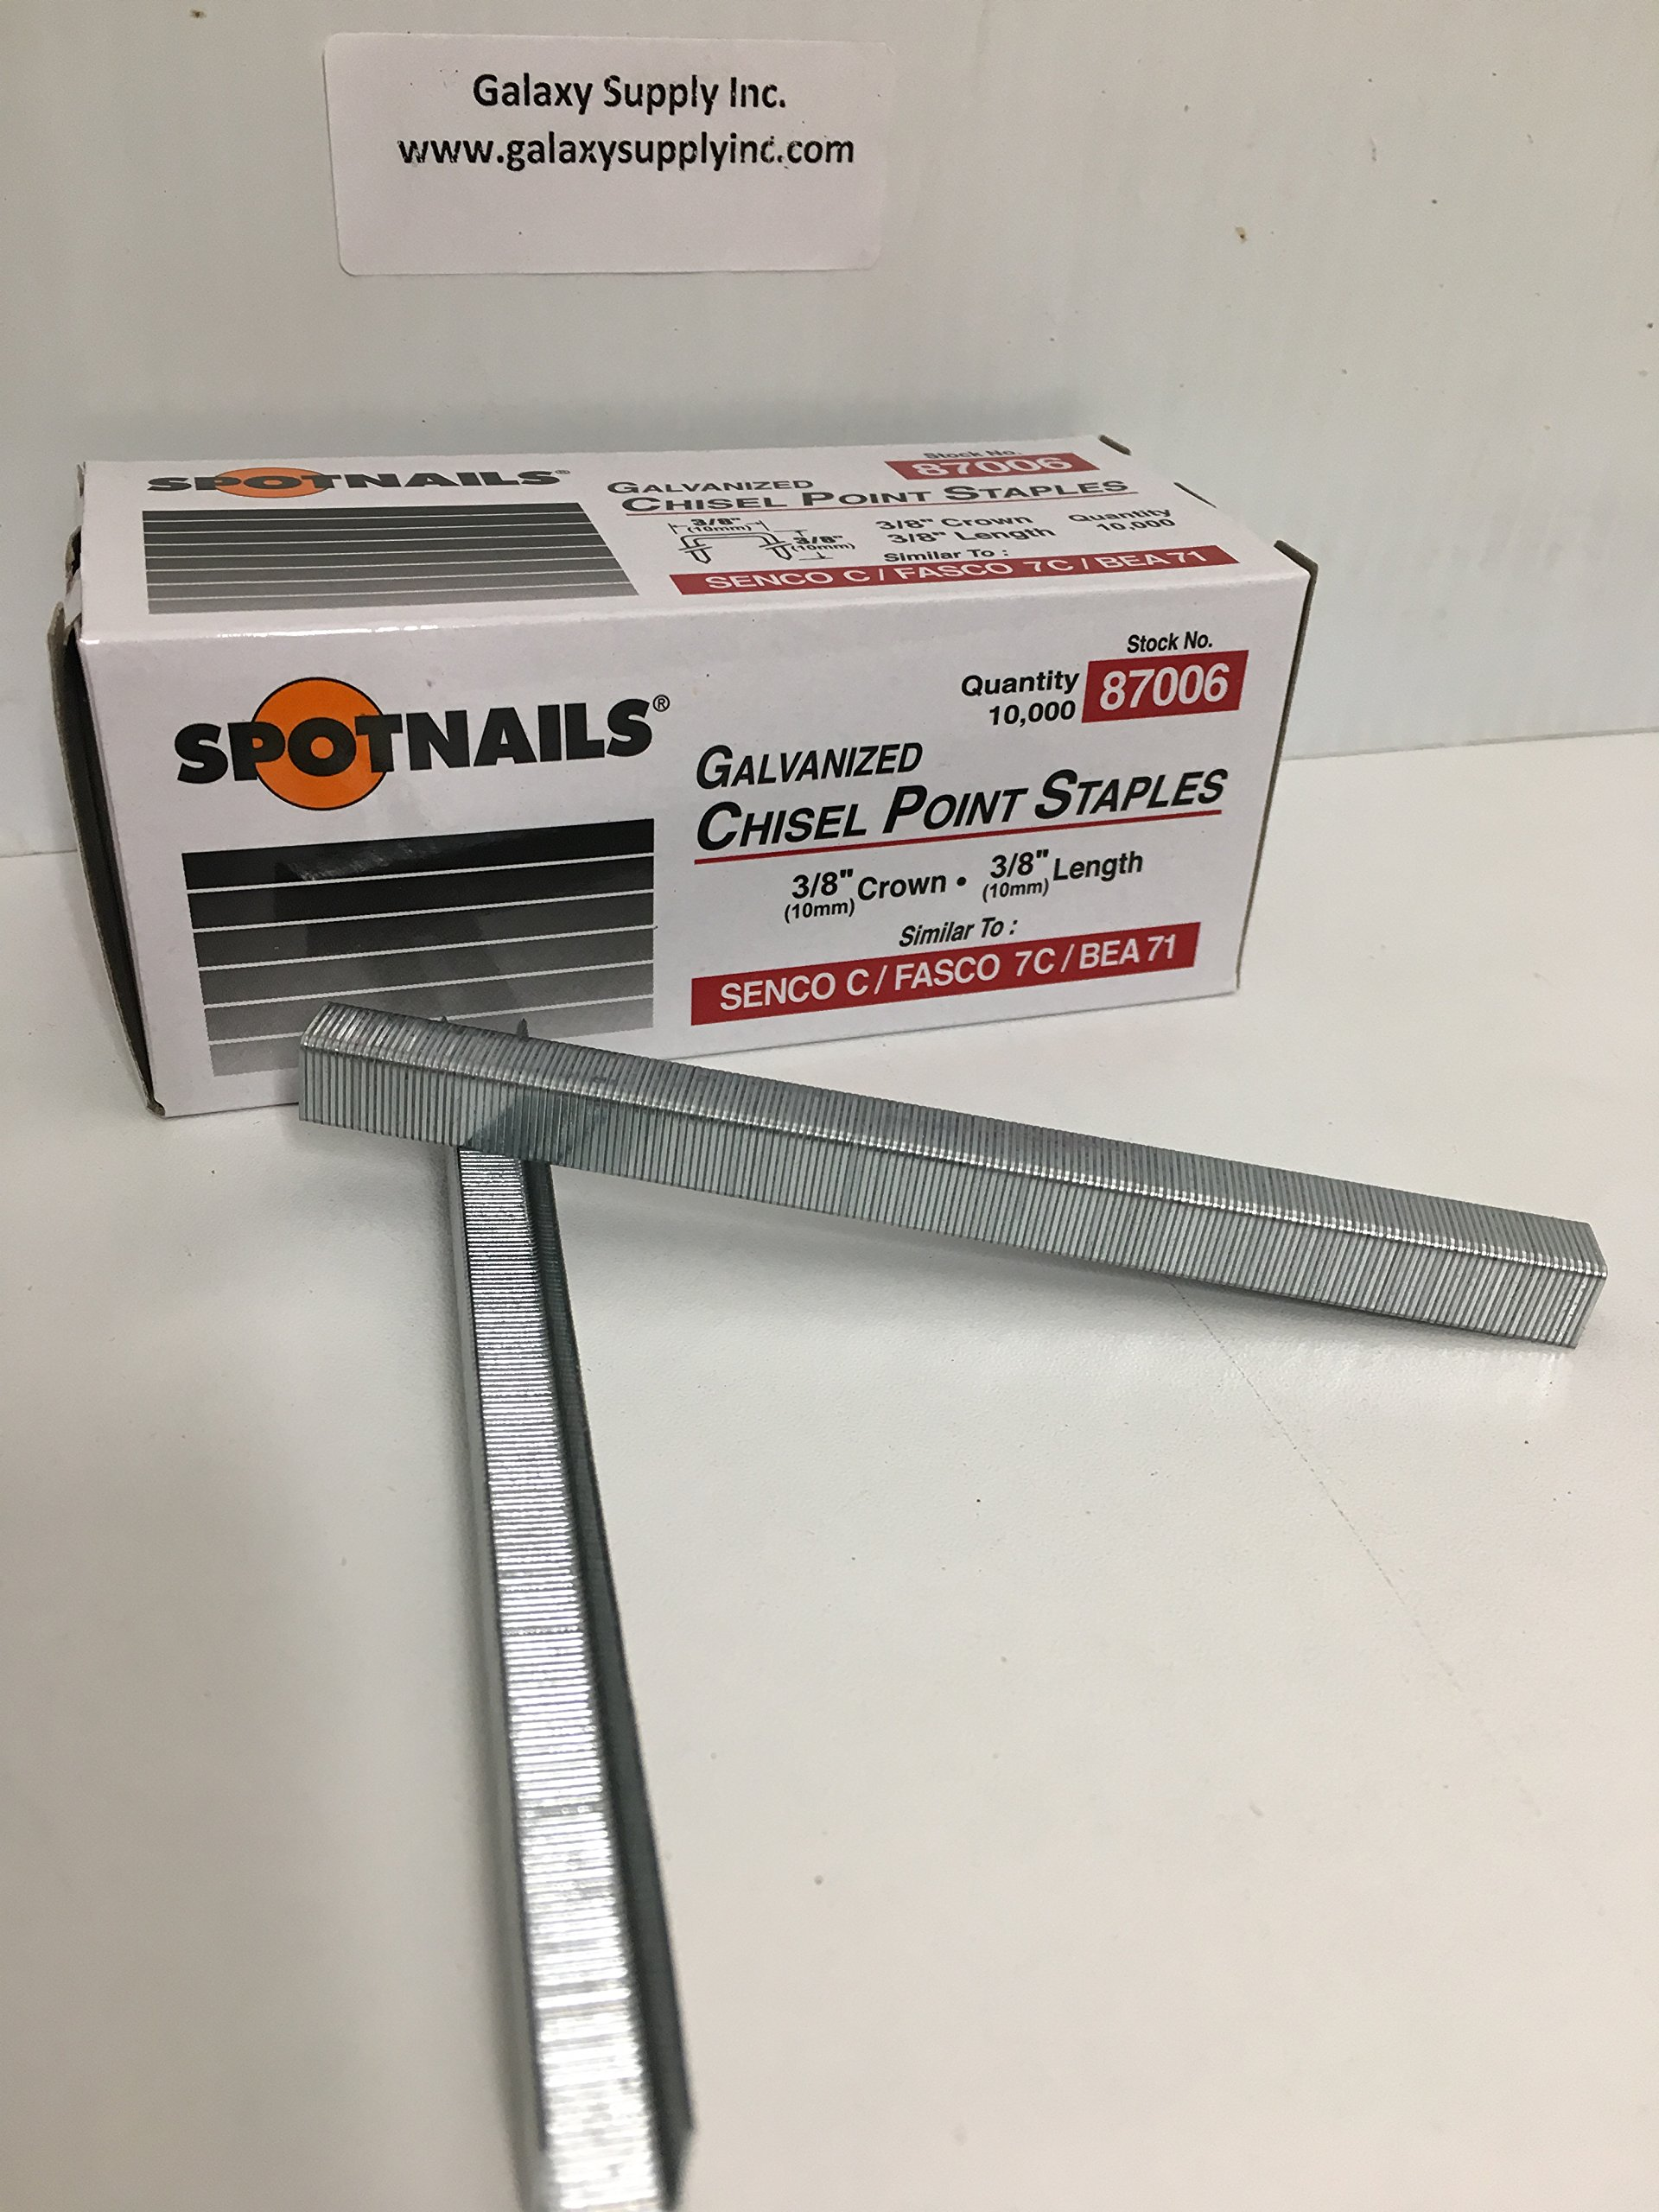 SPOTNAILS 87006. 71 Or C Series STATPLES. 3/8'' Length. Sold by 18 Boxes/CASE